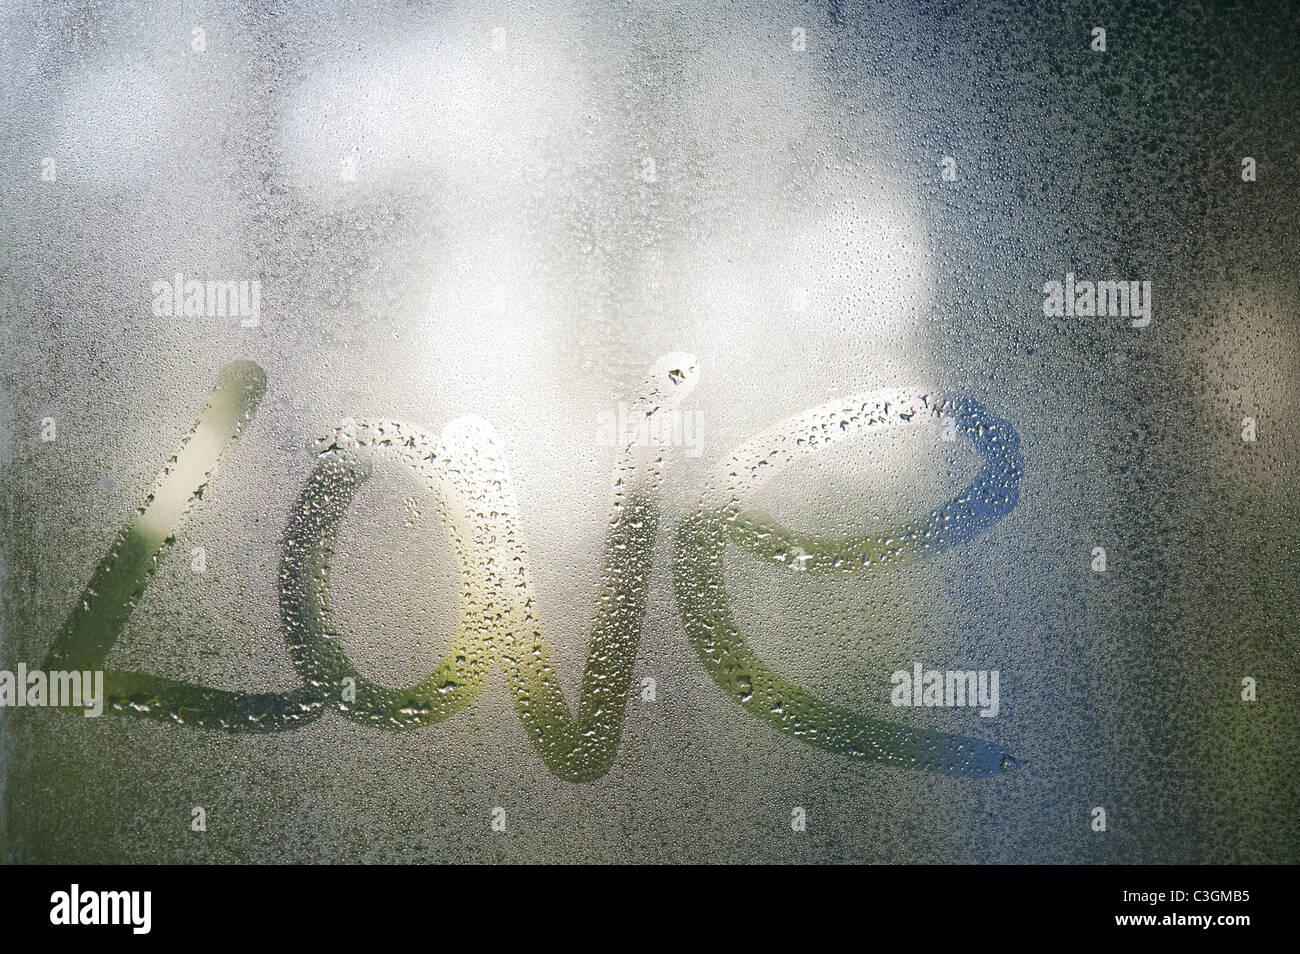 Love written in condensation on a glass window pane - Stock Image